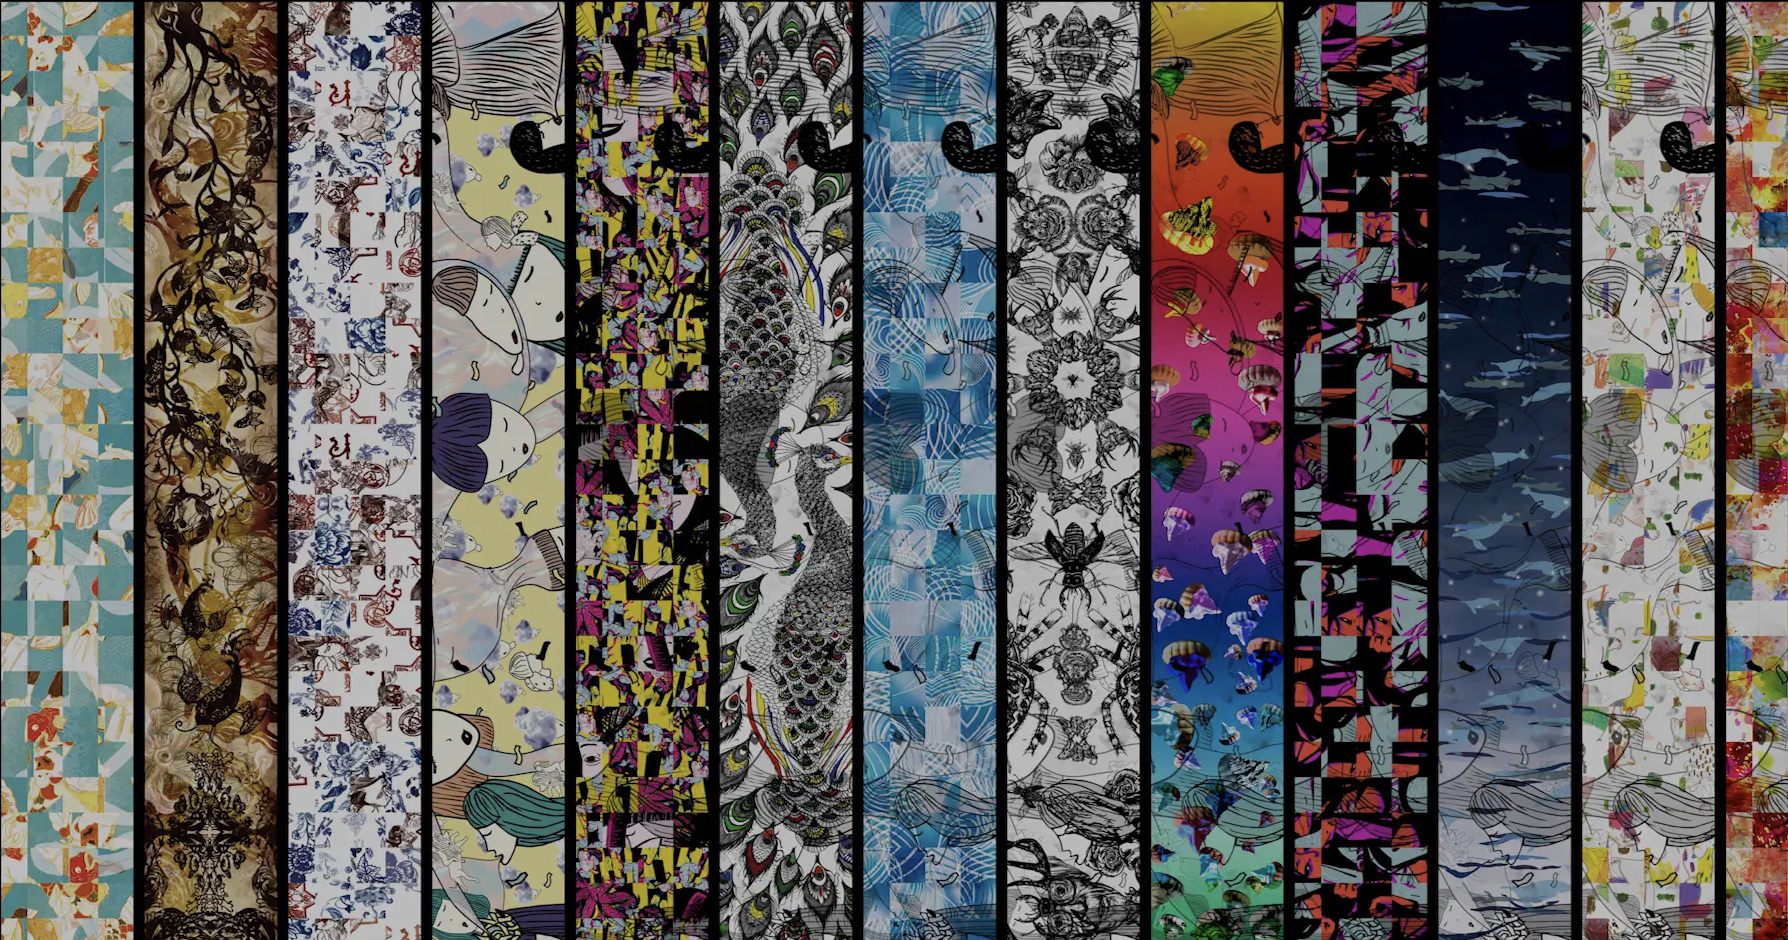 A collection of digital artworks by NTU Professor Ina Conradi and her students